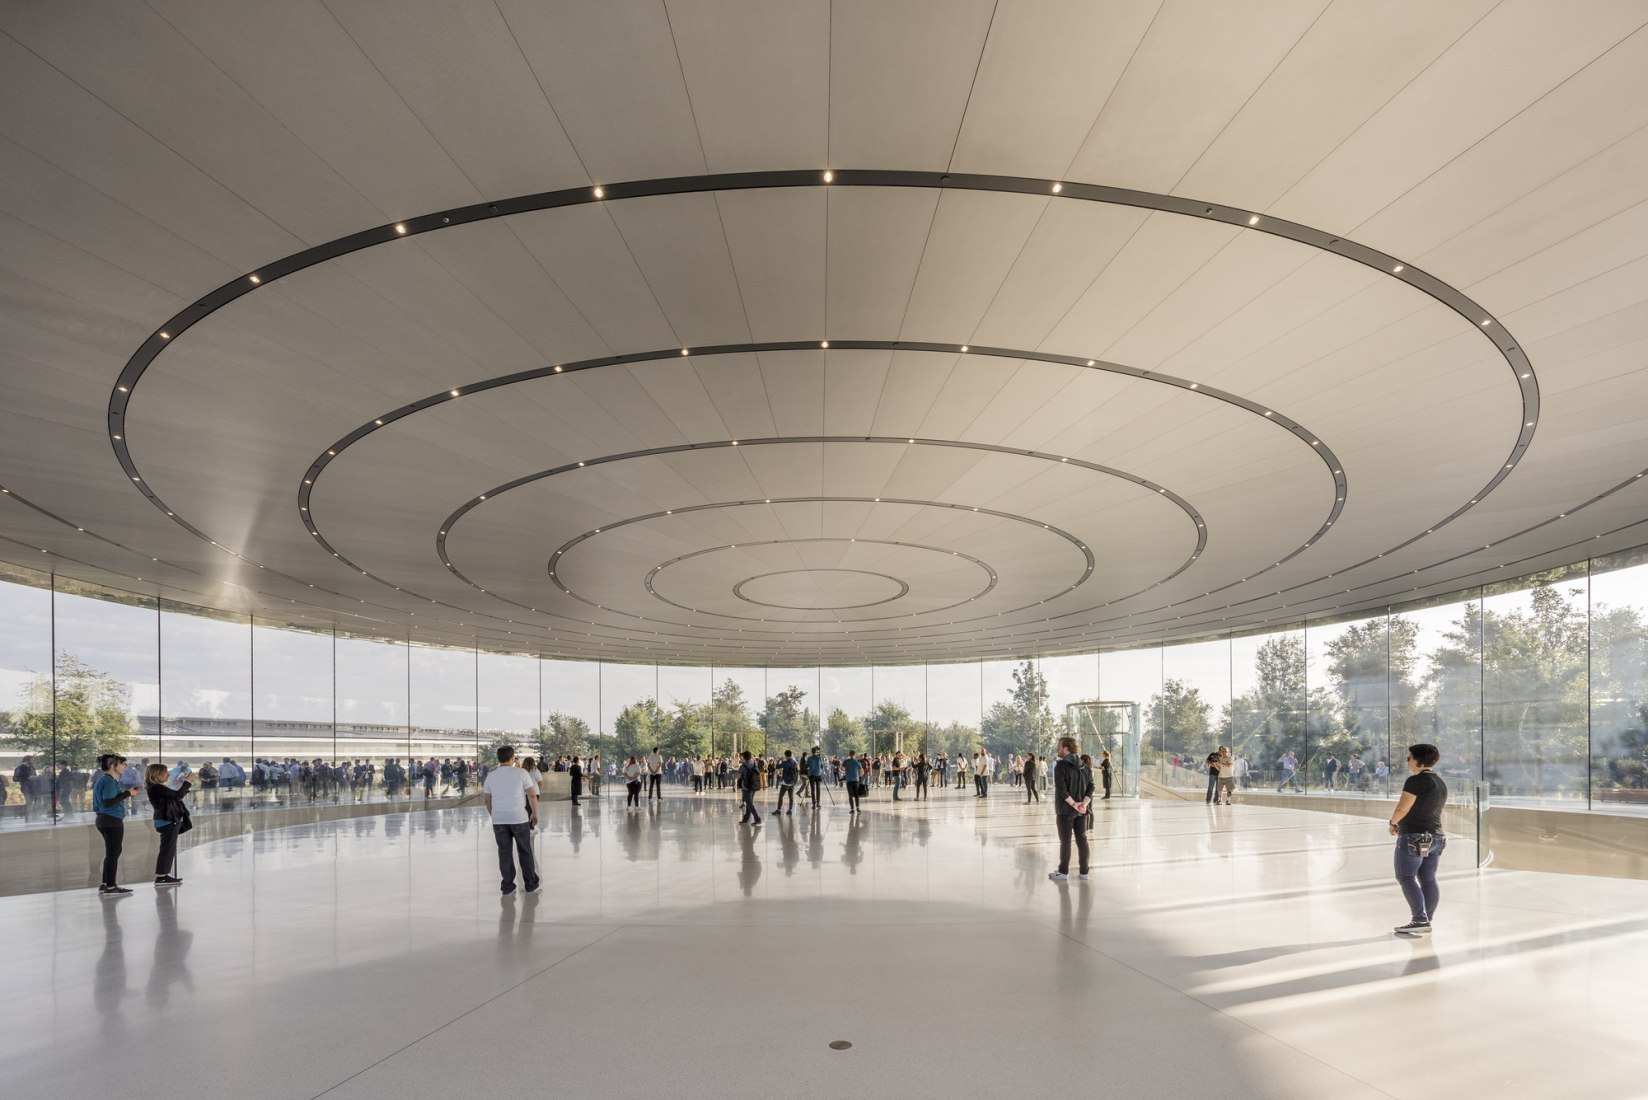 Apple's Steve Jobs auditorium. Photograph © Nigel Young / Foster + Partners.